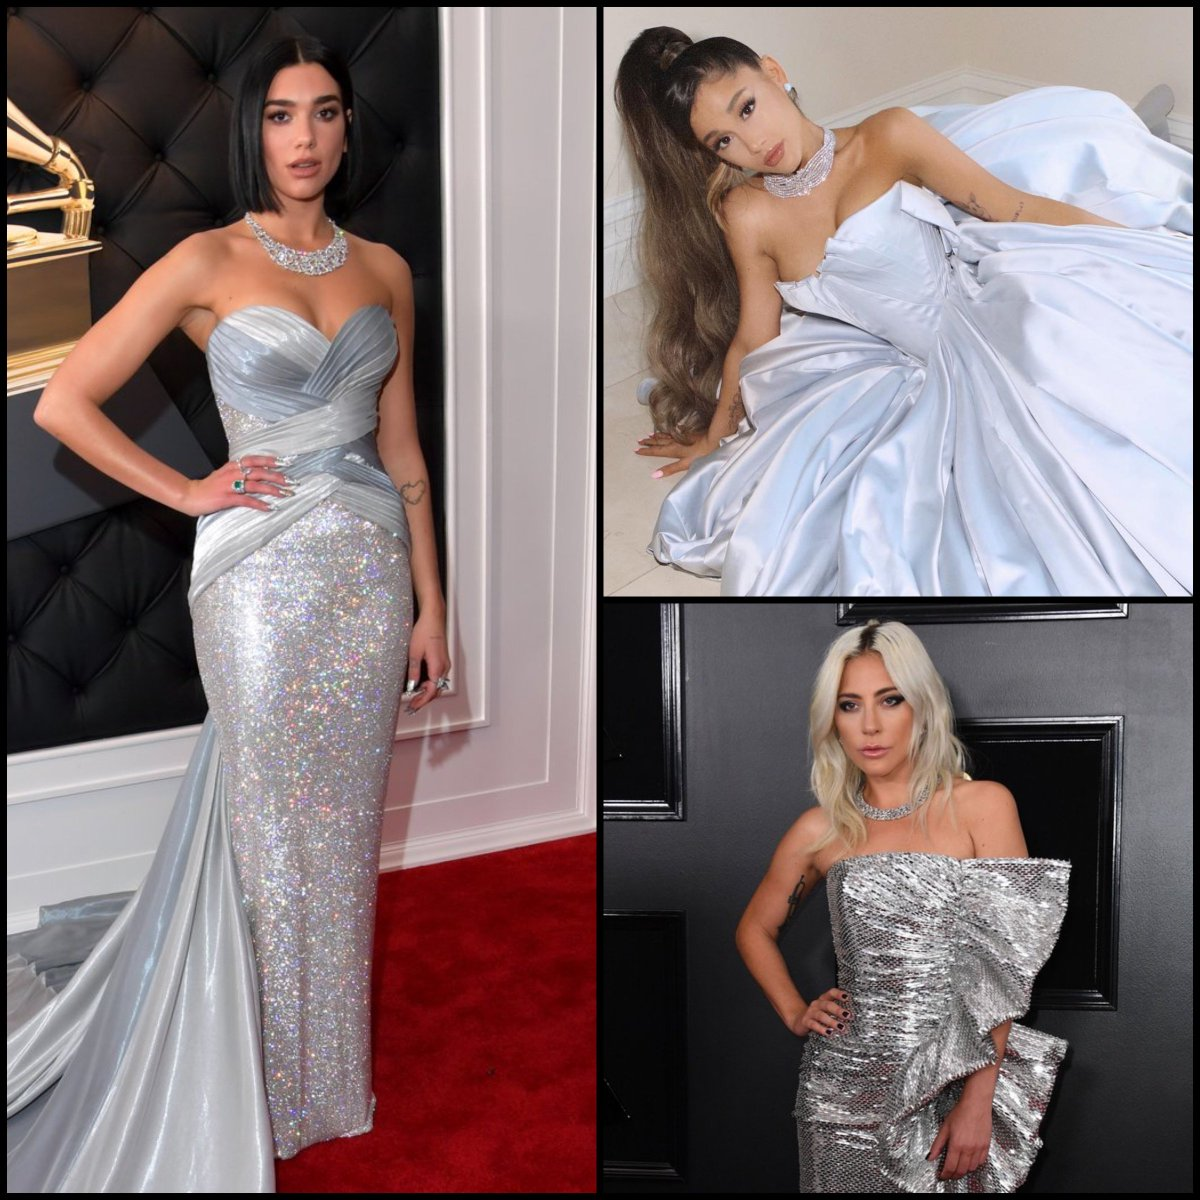 Congrats to @DUALIPA @ArianaGrande @ladygaga and all the winners at the #GRAMMYs tonight!